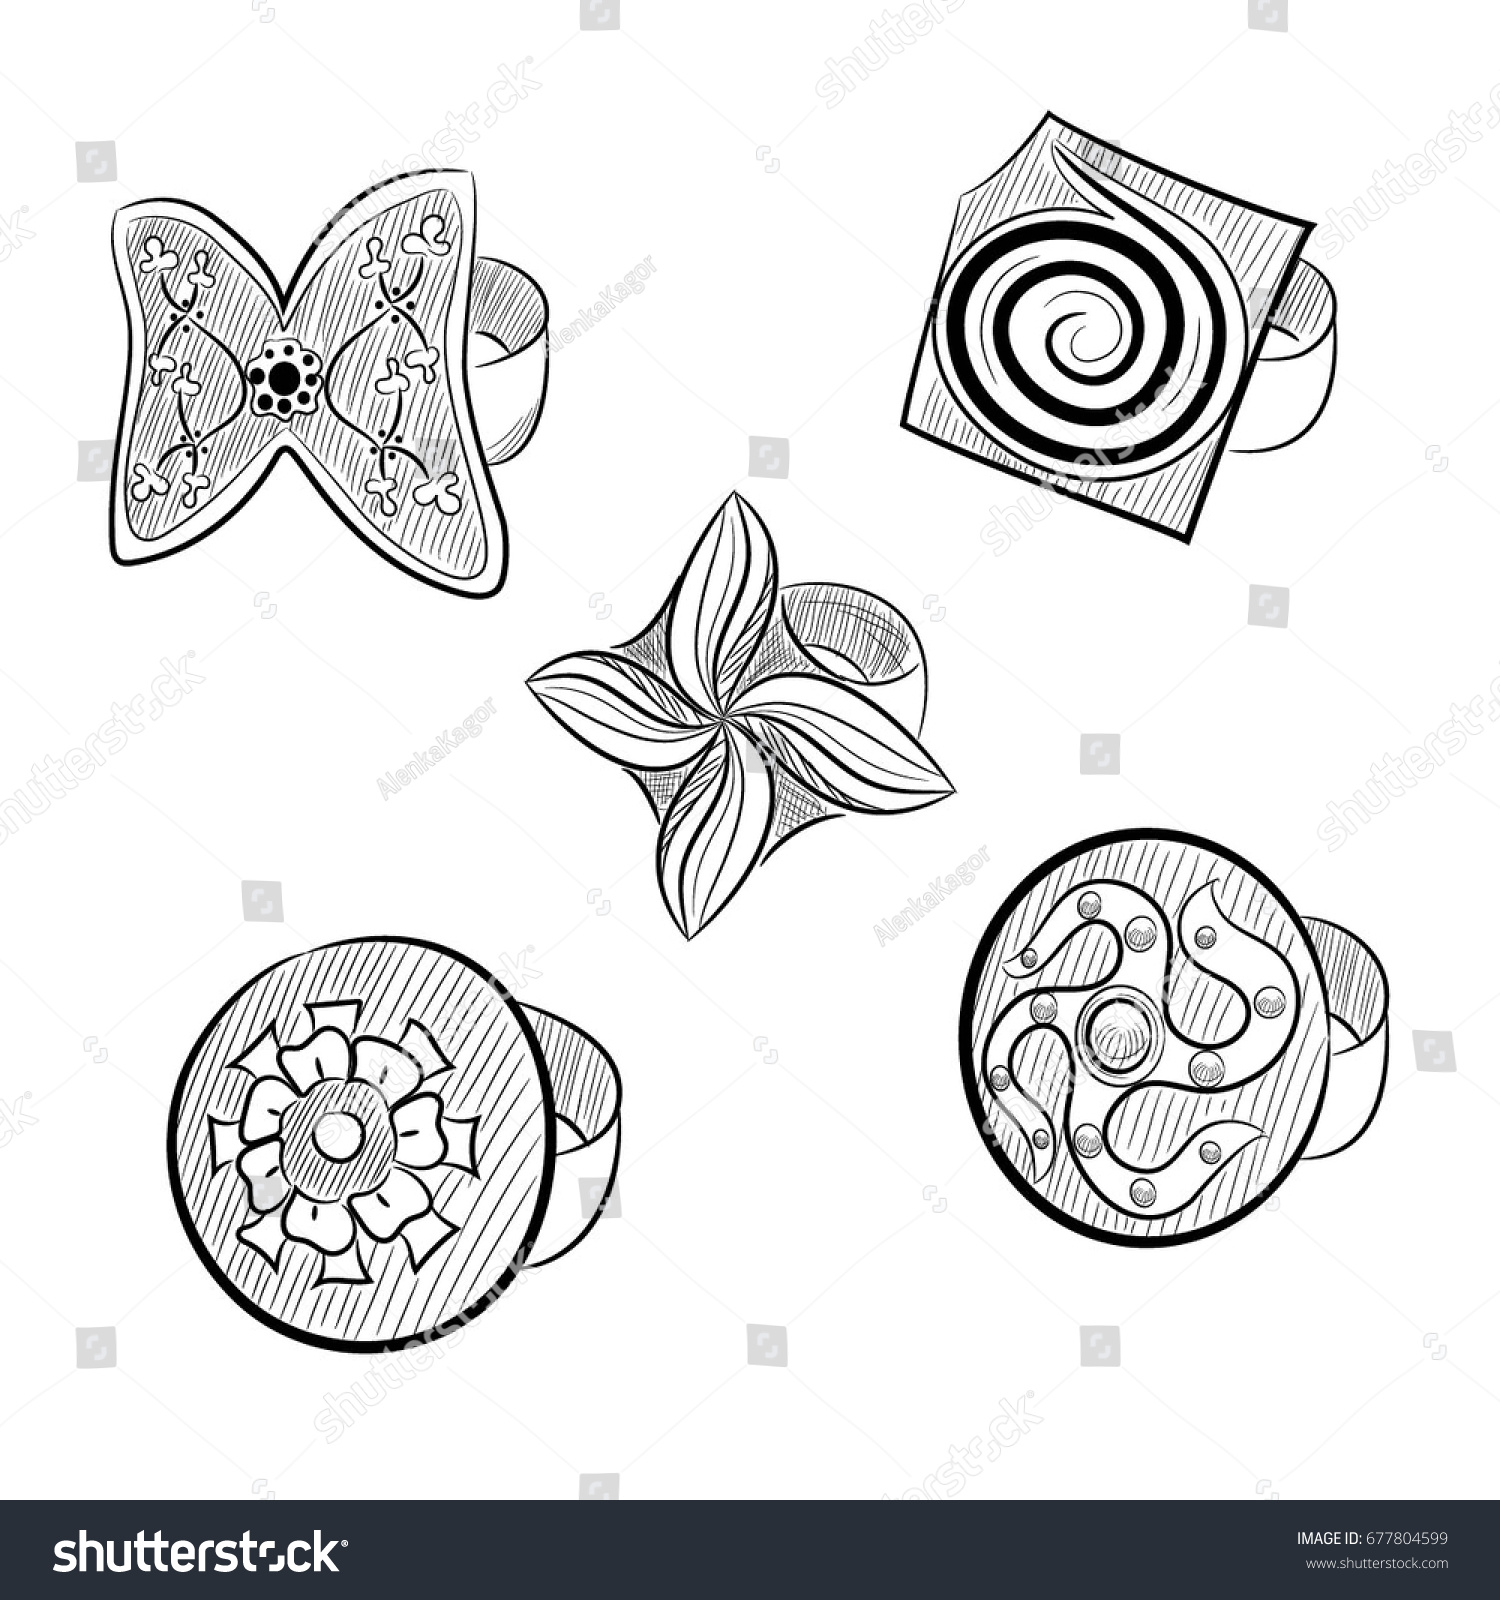 Set jewelry rings vintage jewelry modern stock vector 677804599 rings vintage jewelry in modern style the symbolism of ancient buycottarizona Image collections